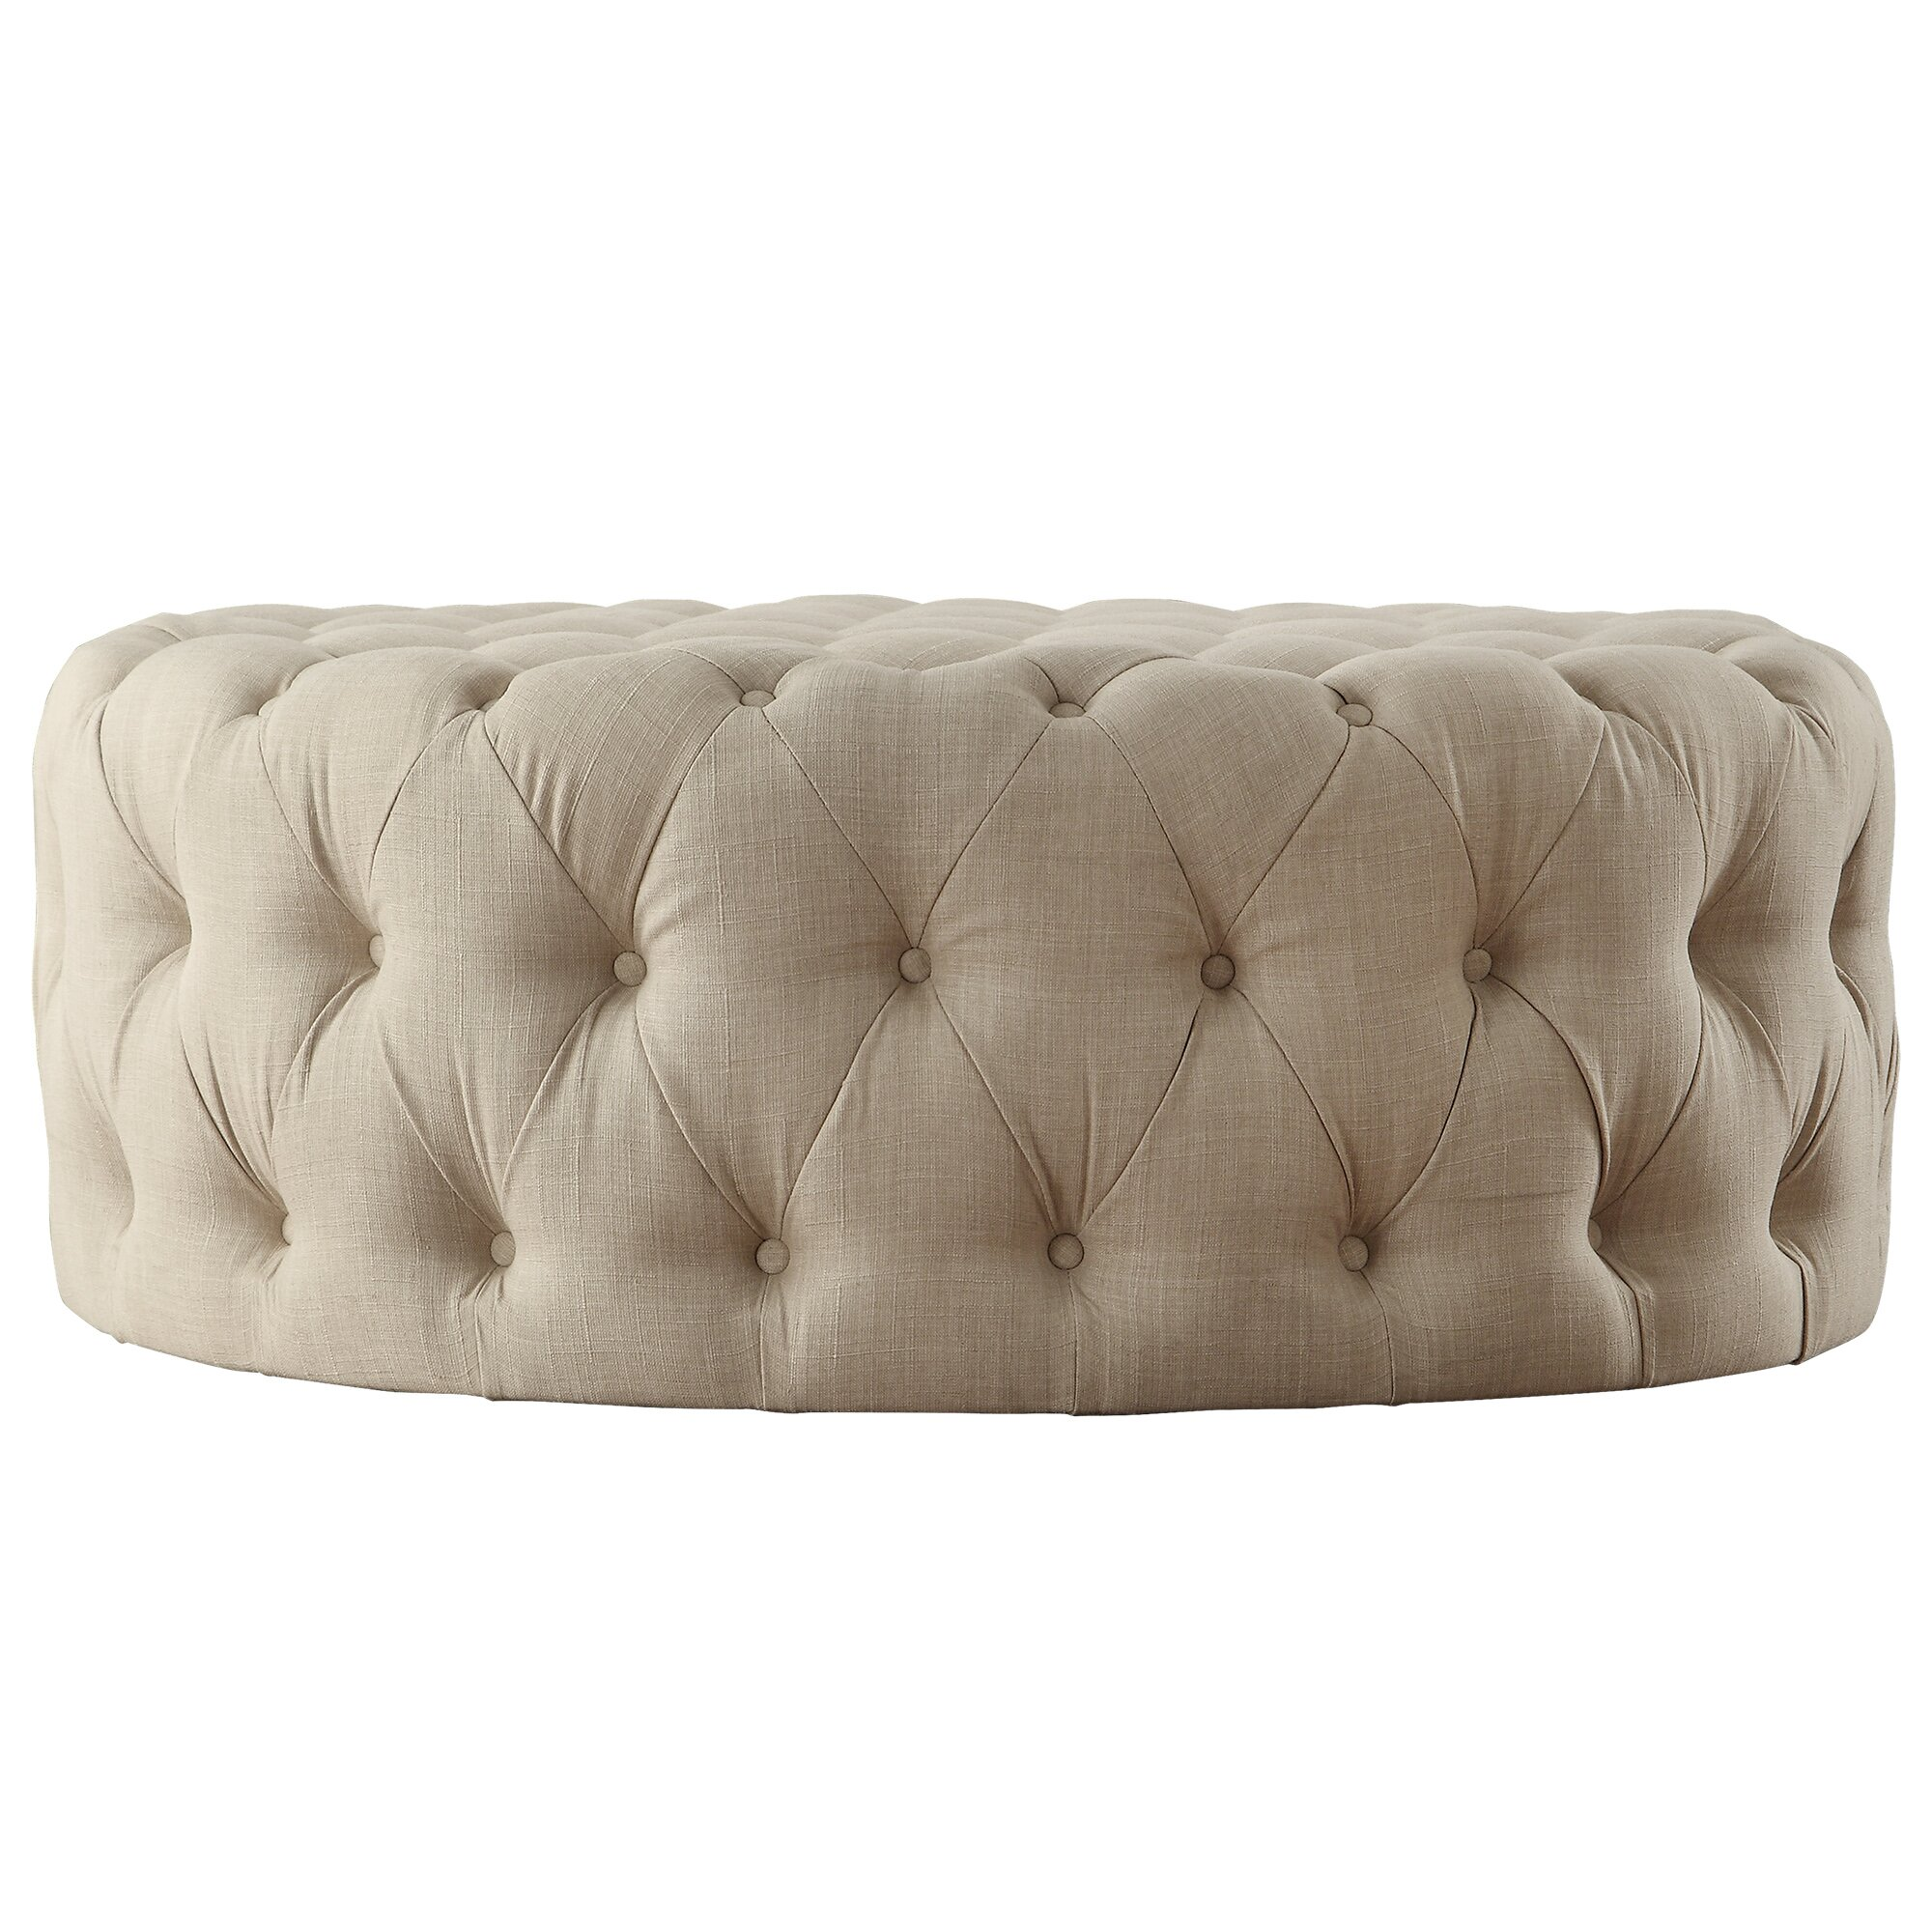 Lark Manor Bourges Round Tufted Cocktail Ottoman & Reviews | Wayfair